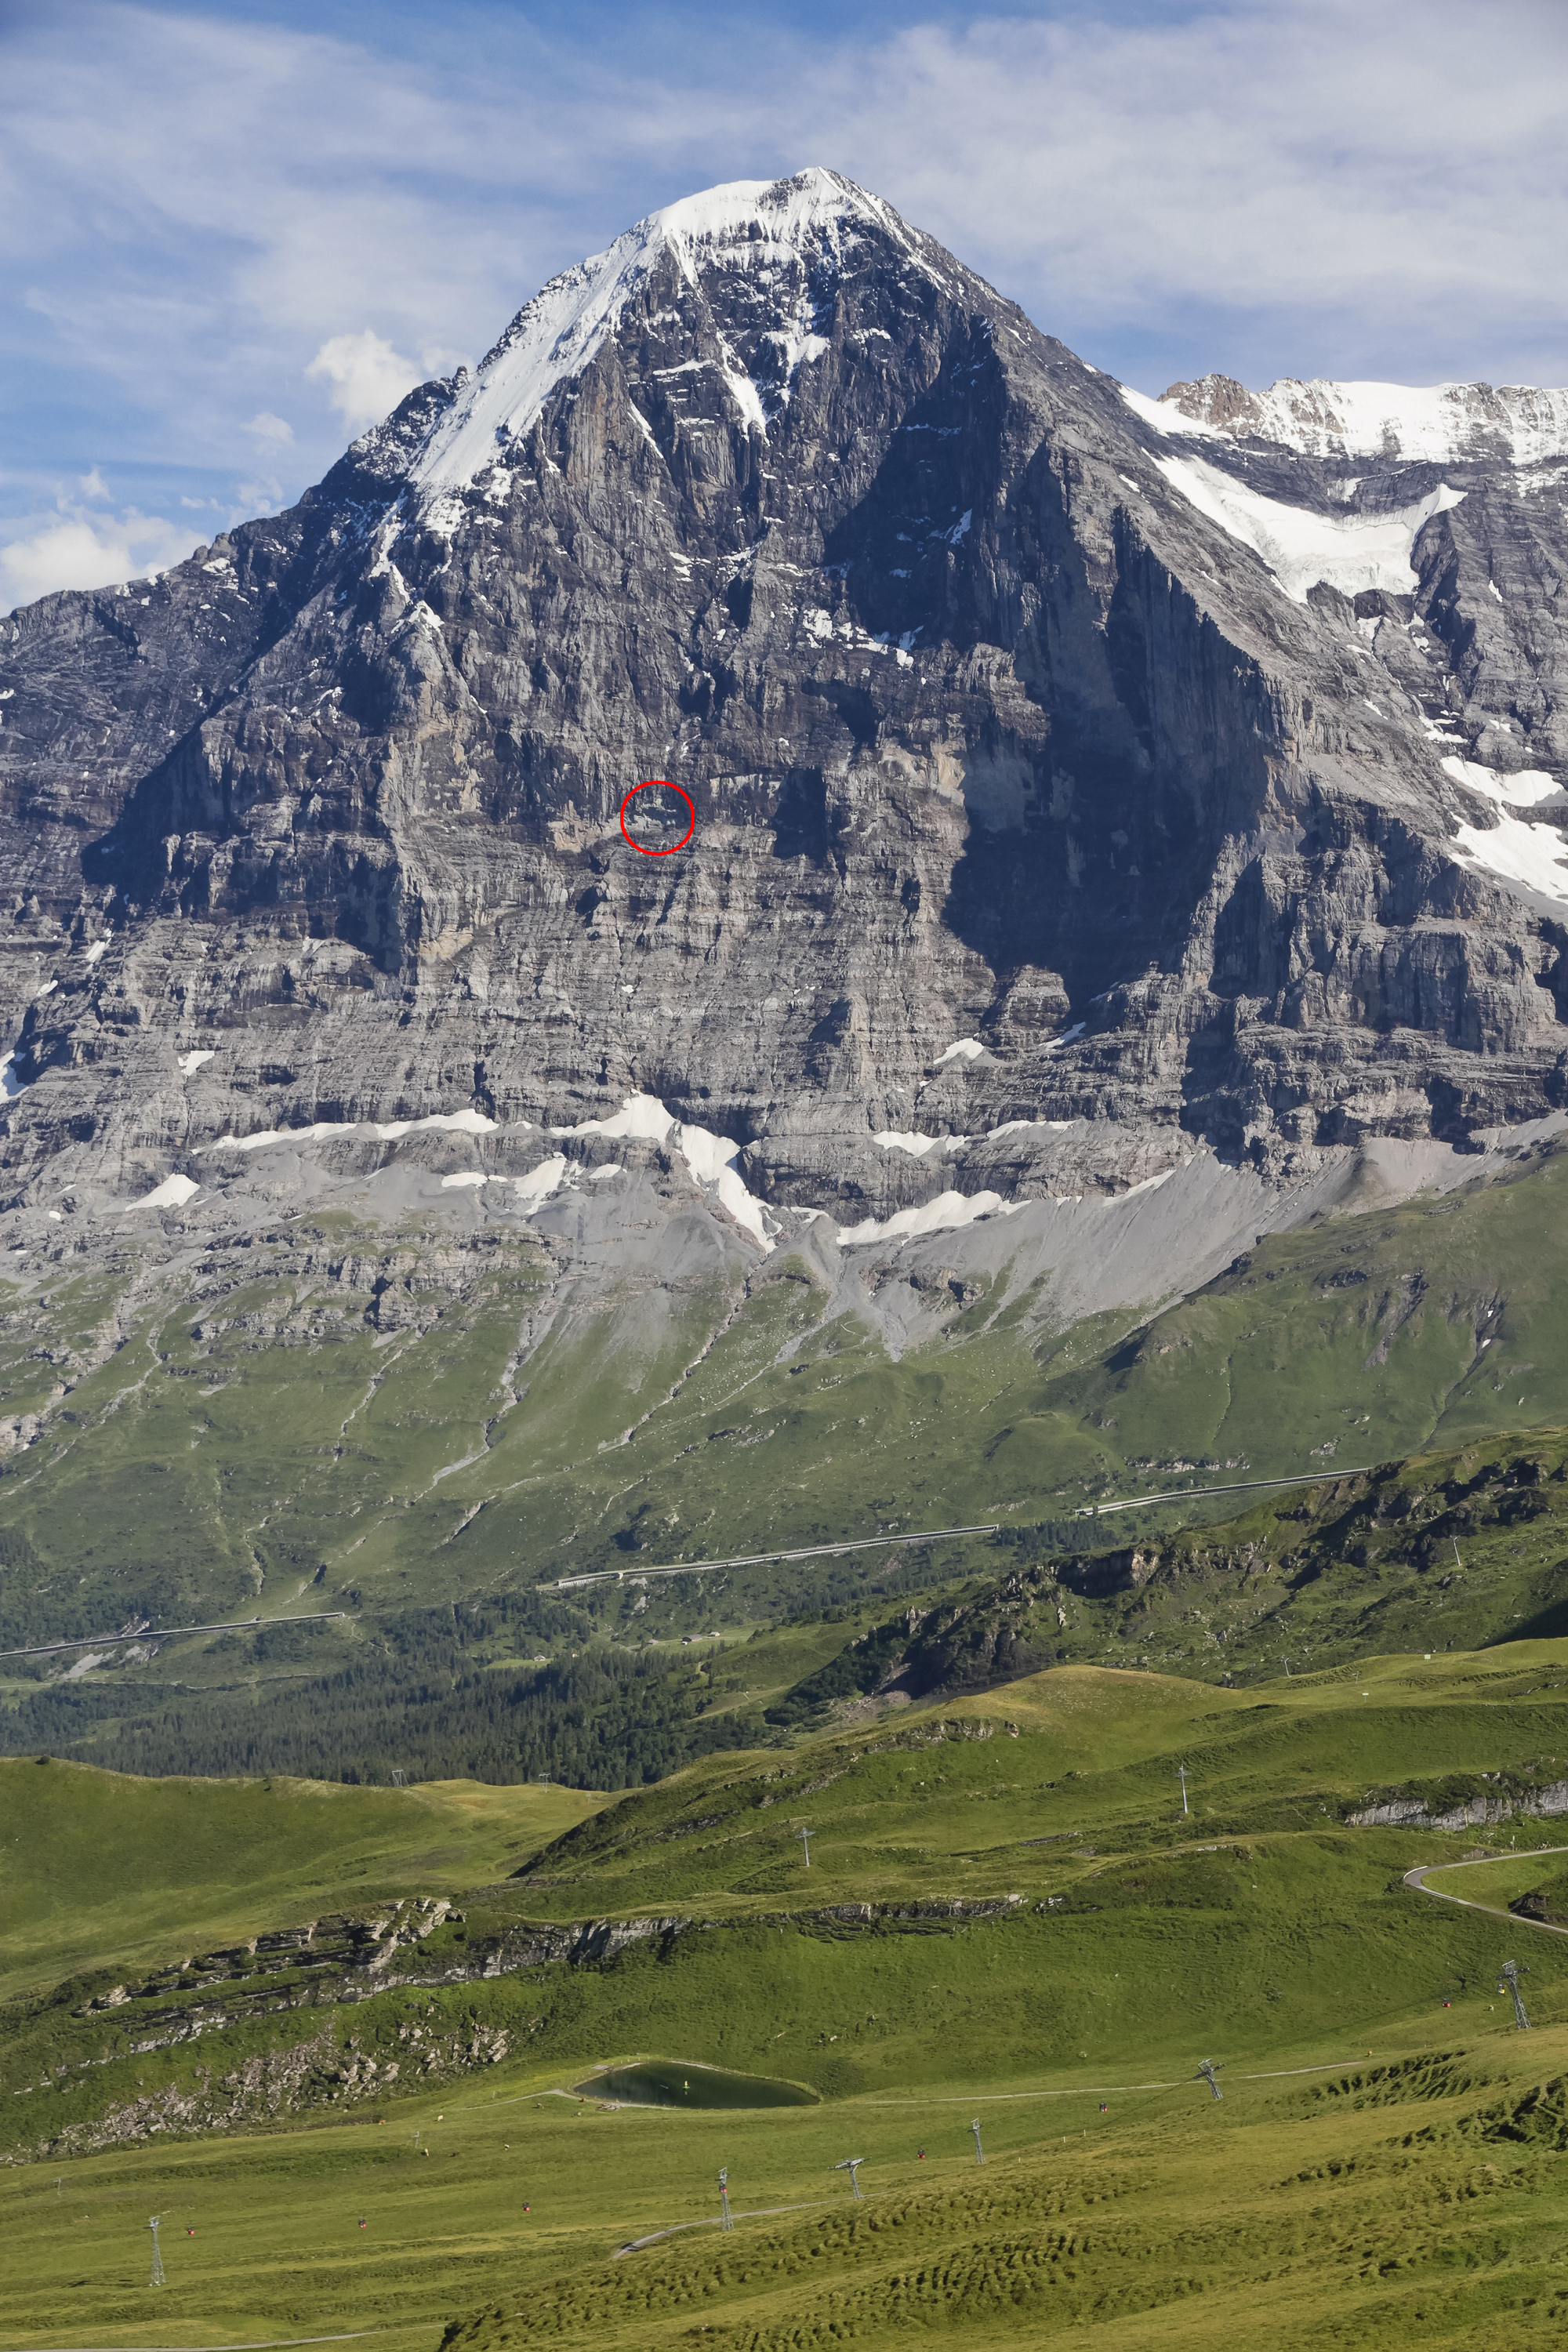 3- The Eiger